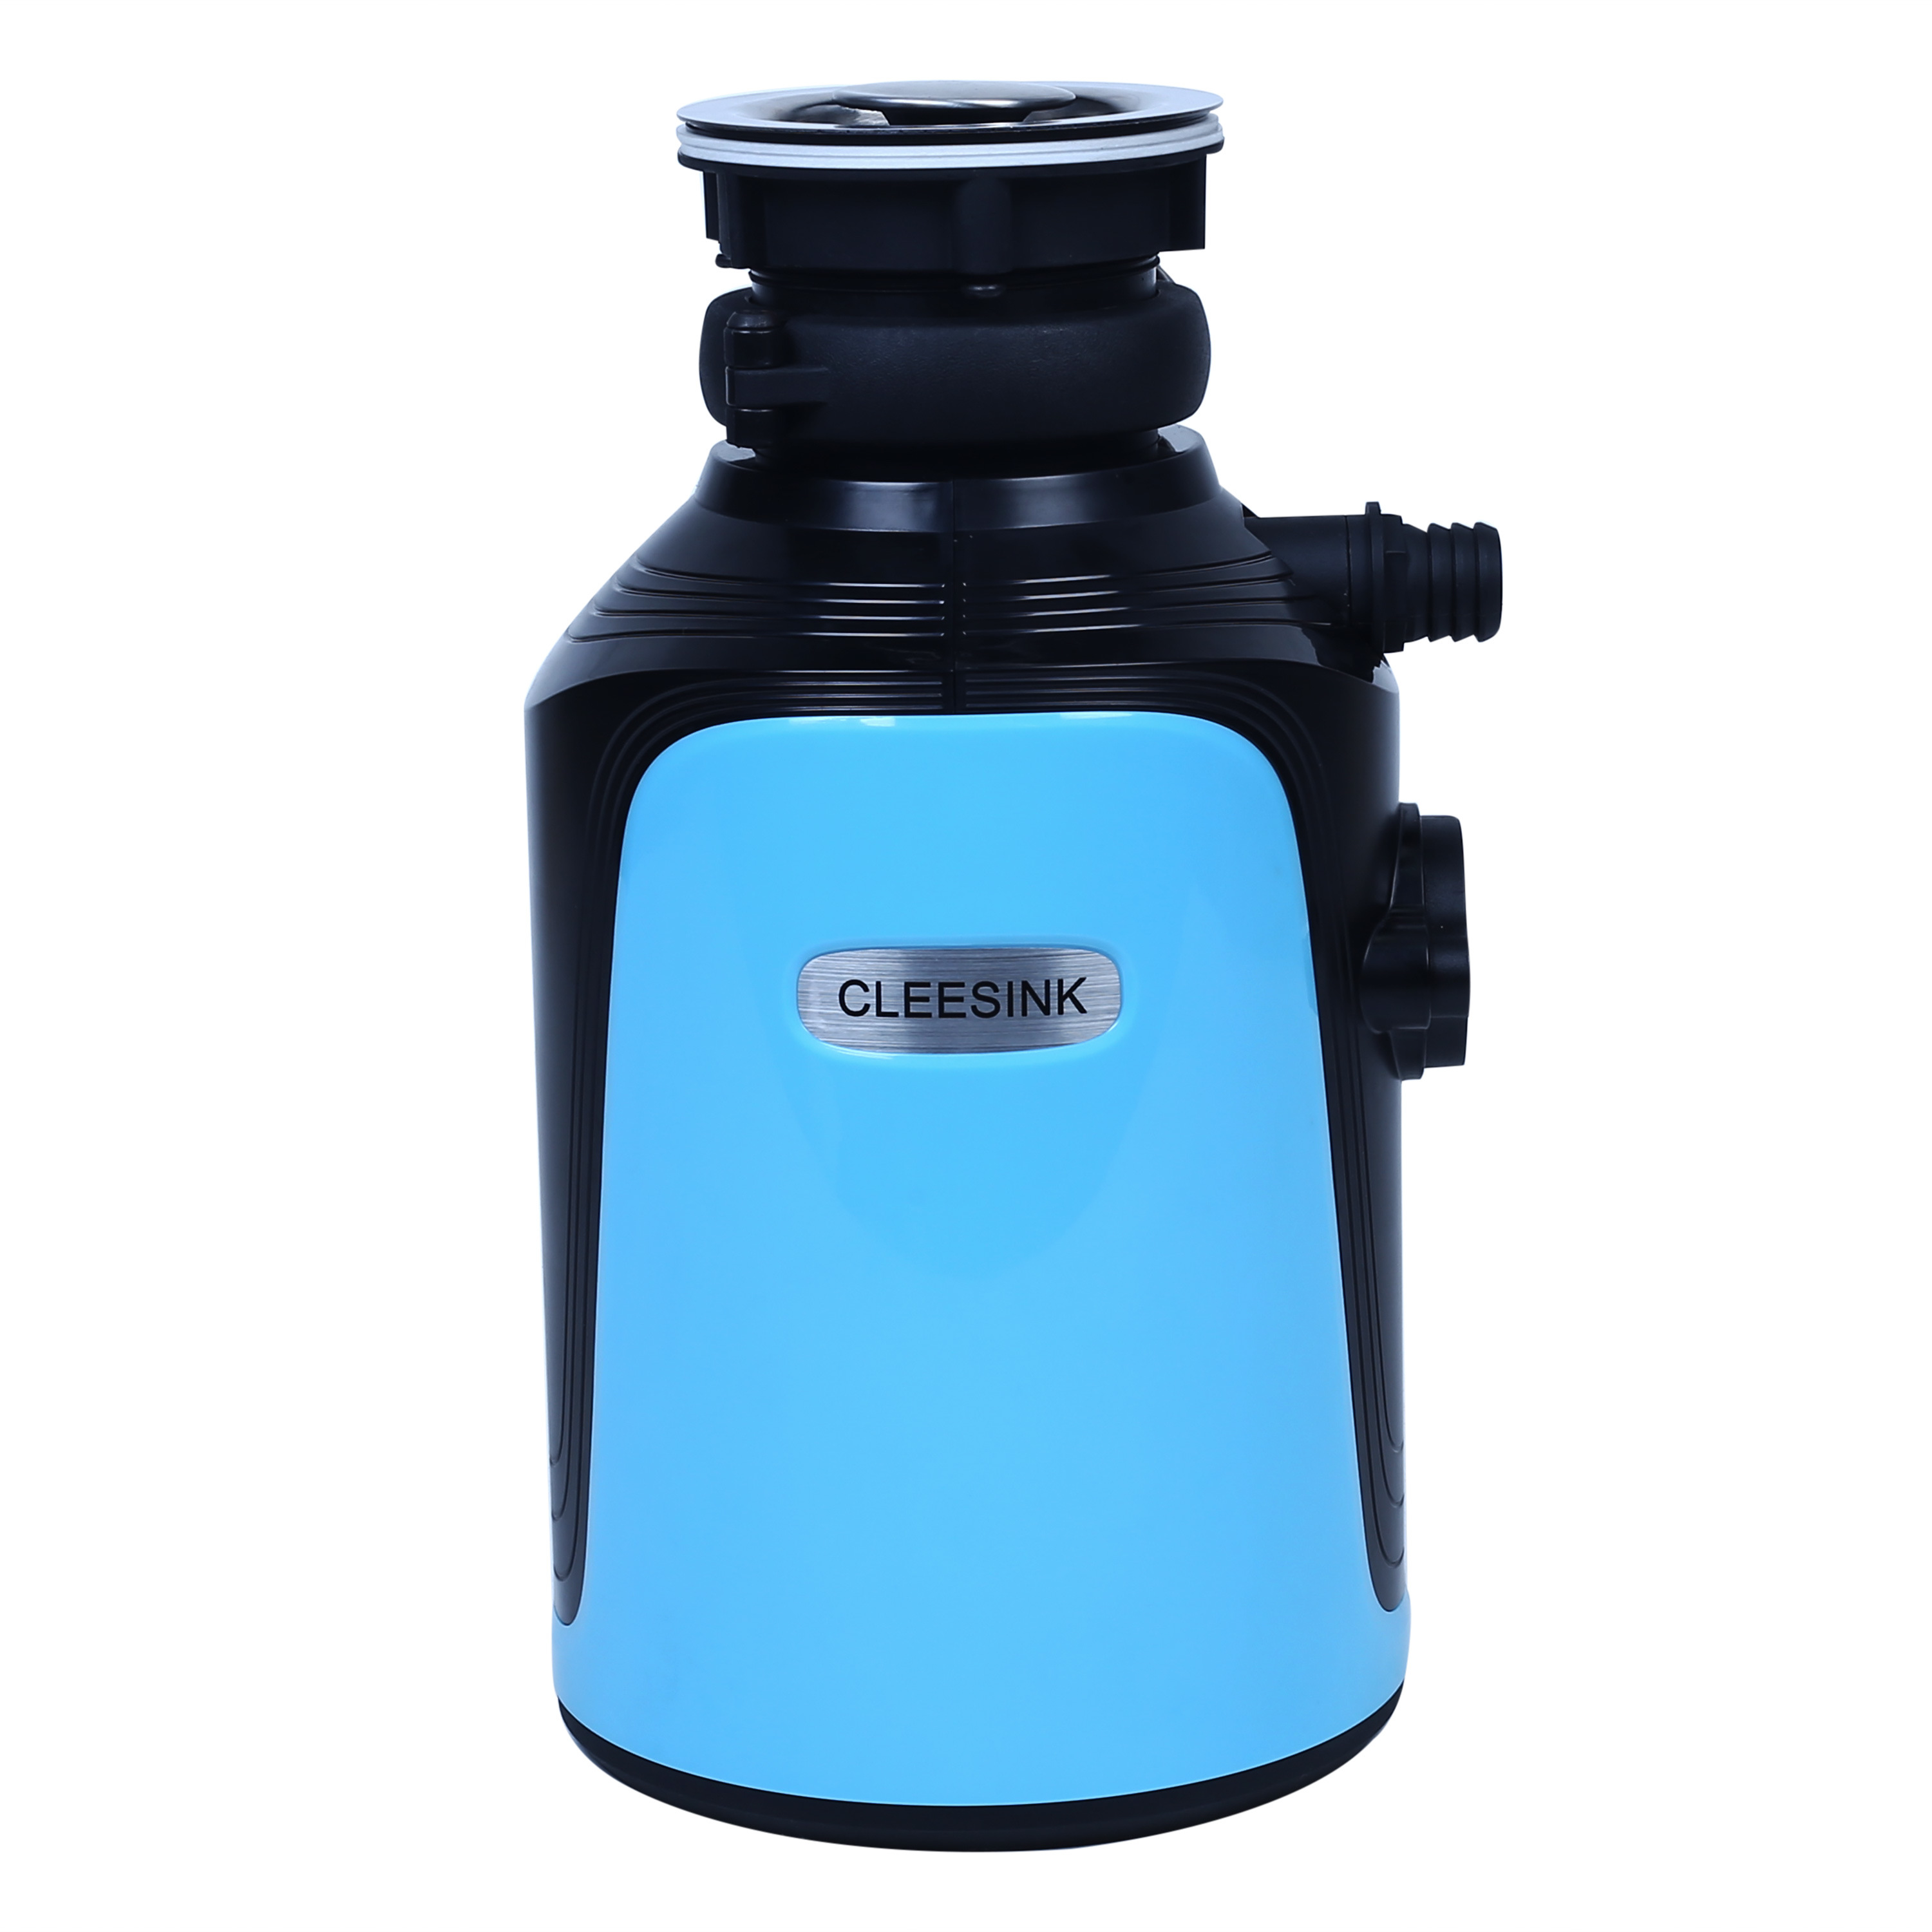 China Hot Sale Food Waste Disposer Cleesink Photos & Pictures - Made ...